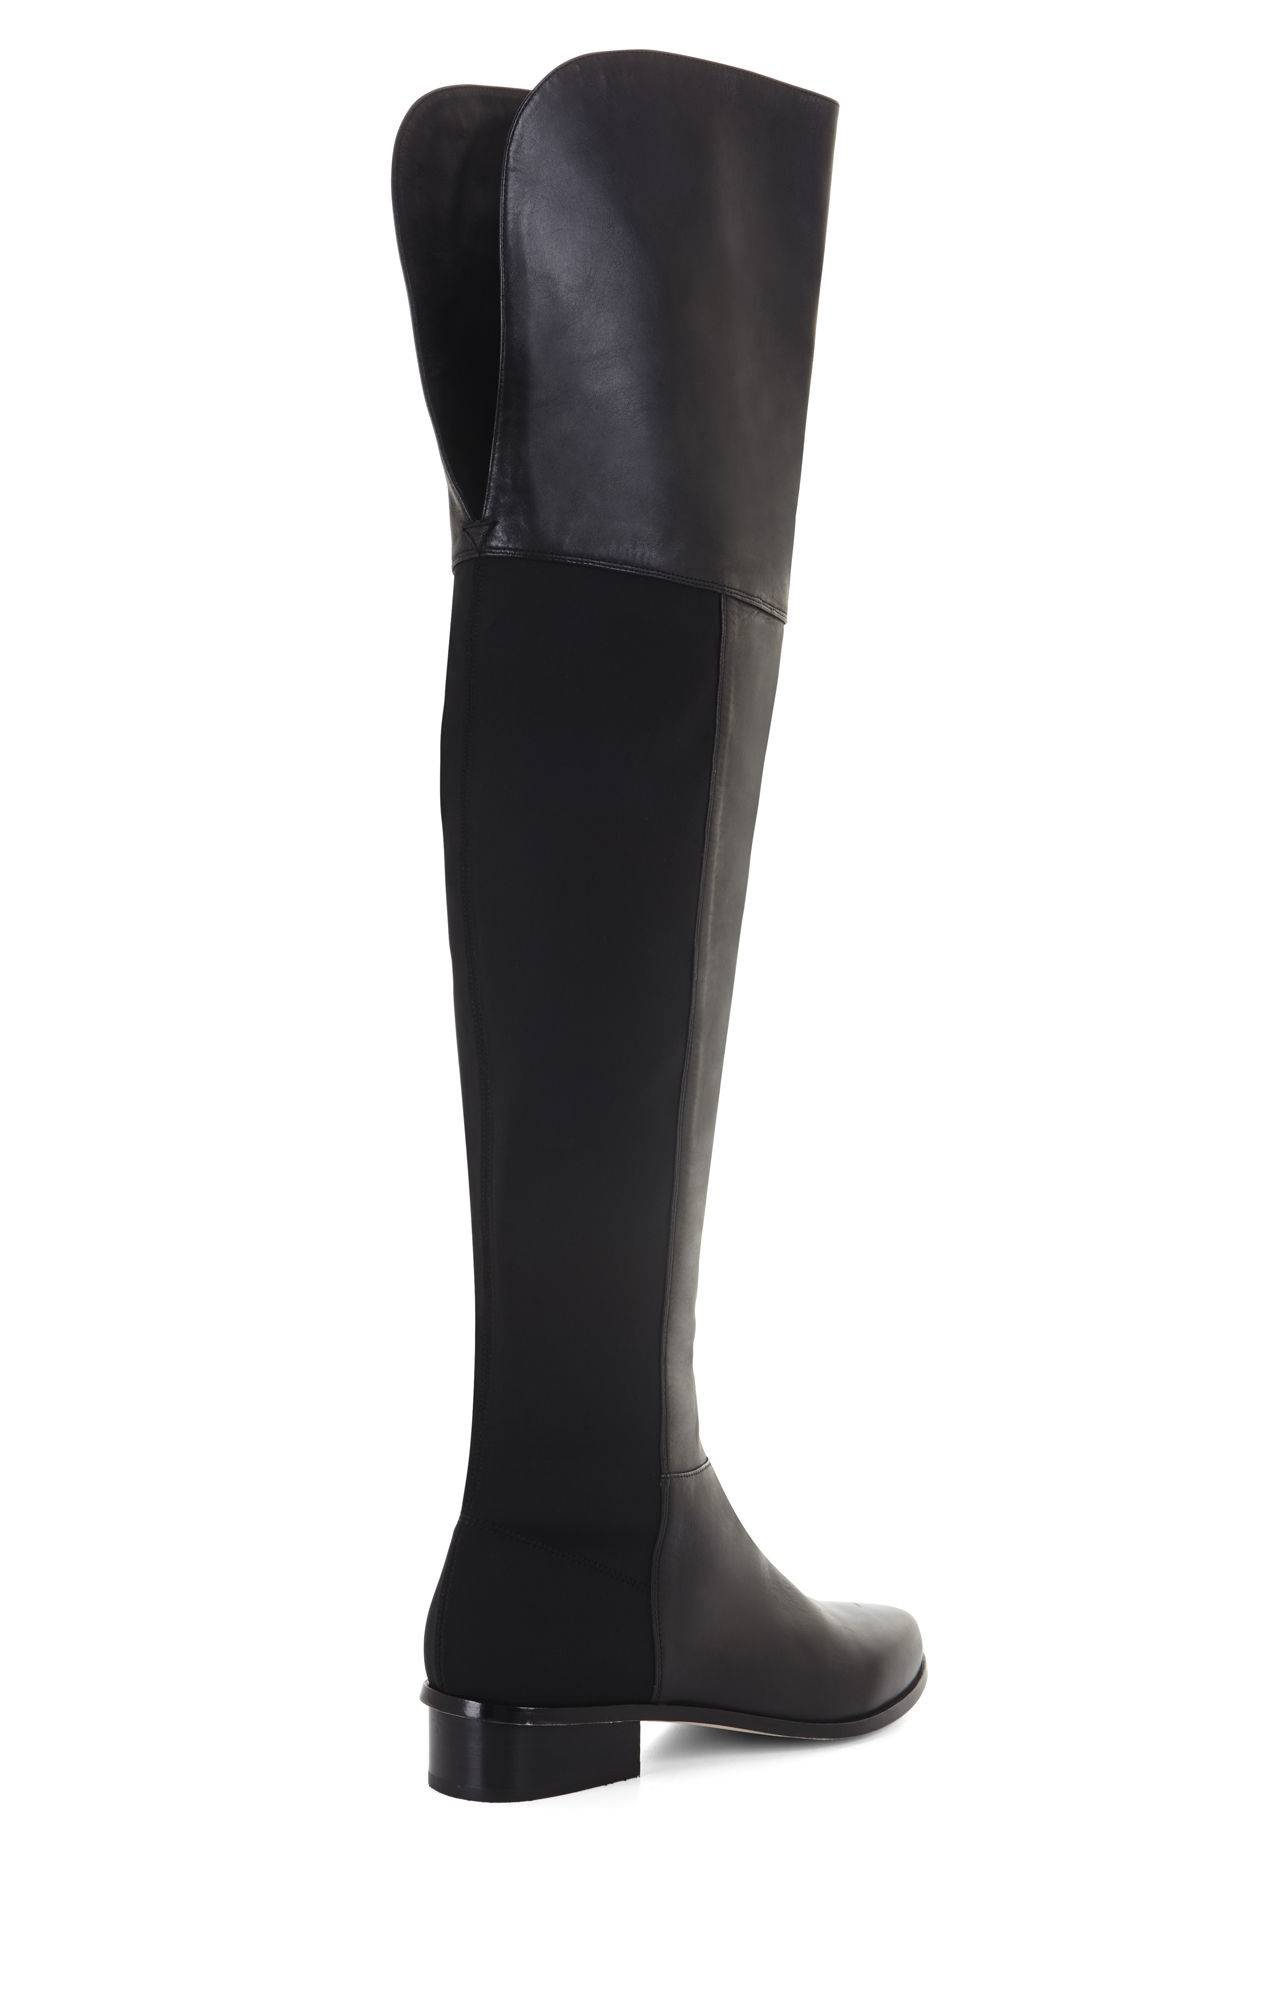 Bcbgmaxazria Slink Over-the-knee Day Boot in Black | Lyst